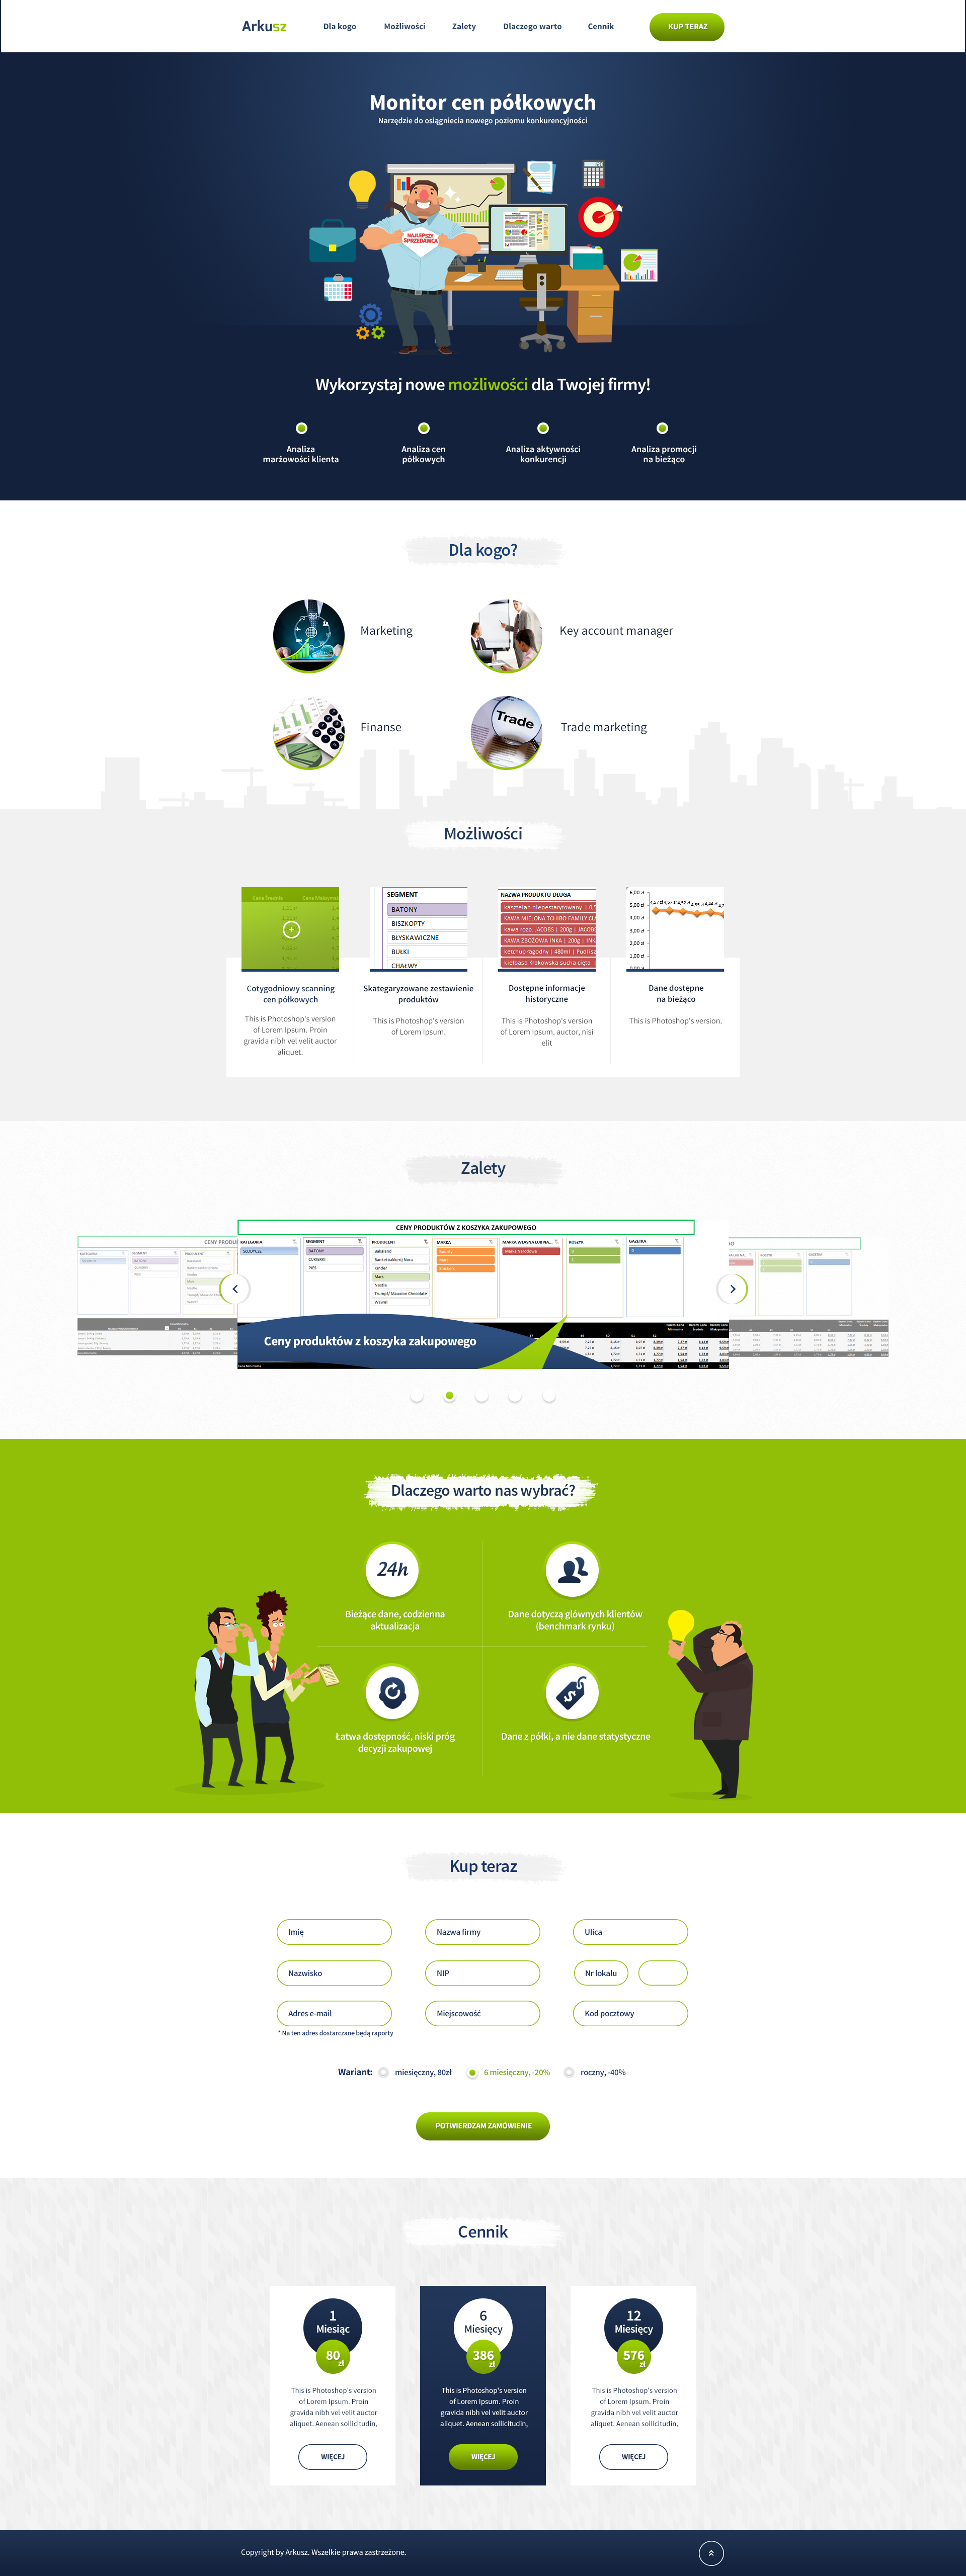 Arkusz - stores application one page Web Design by SycylianBeef on ...